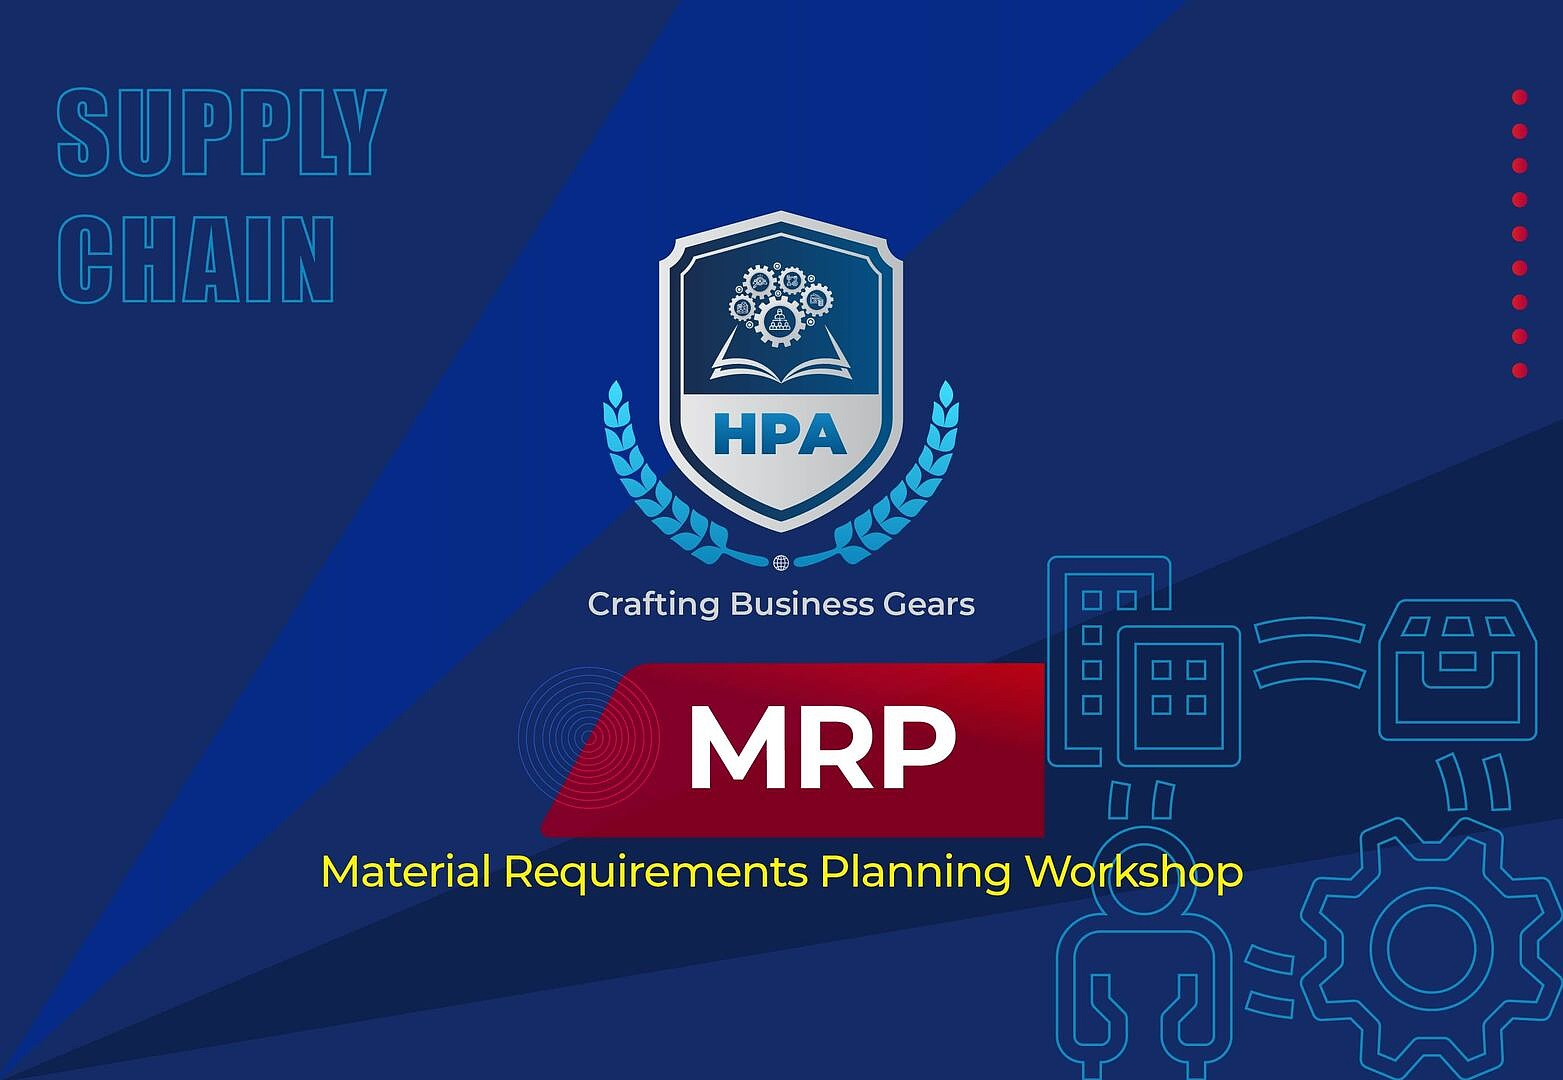 Material Requirements Planning Workshop